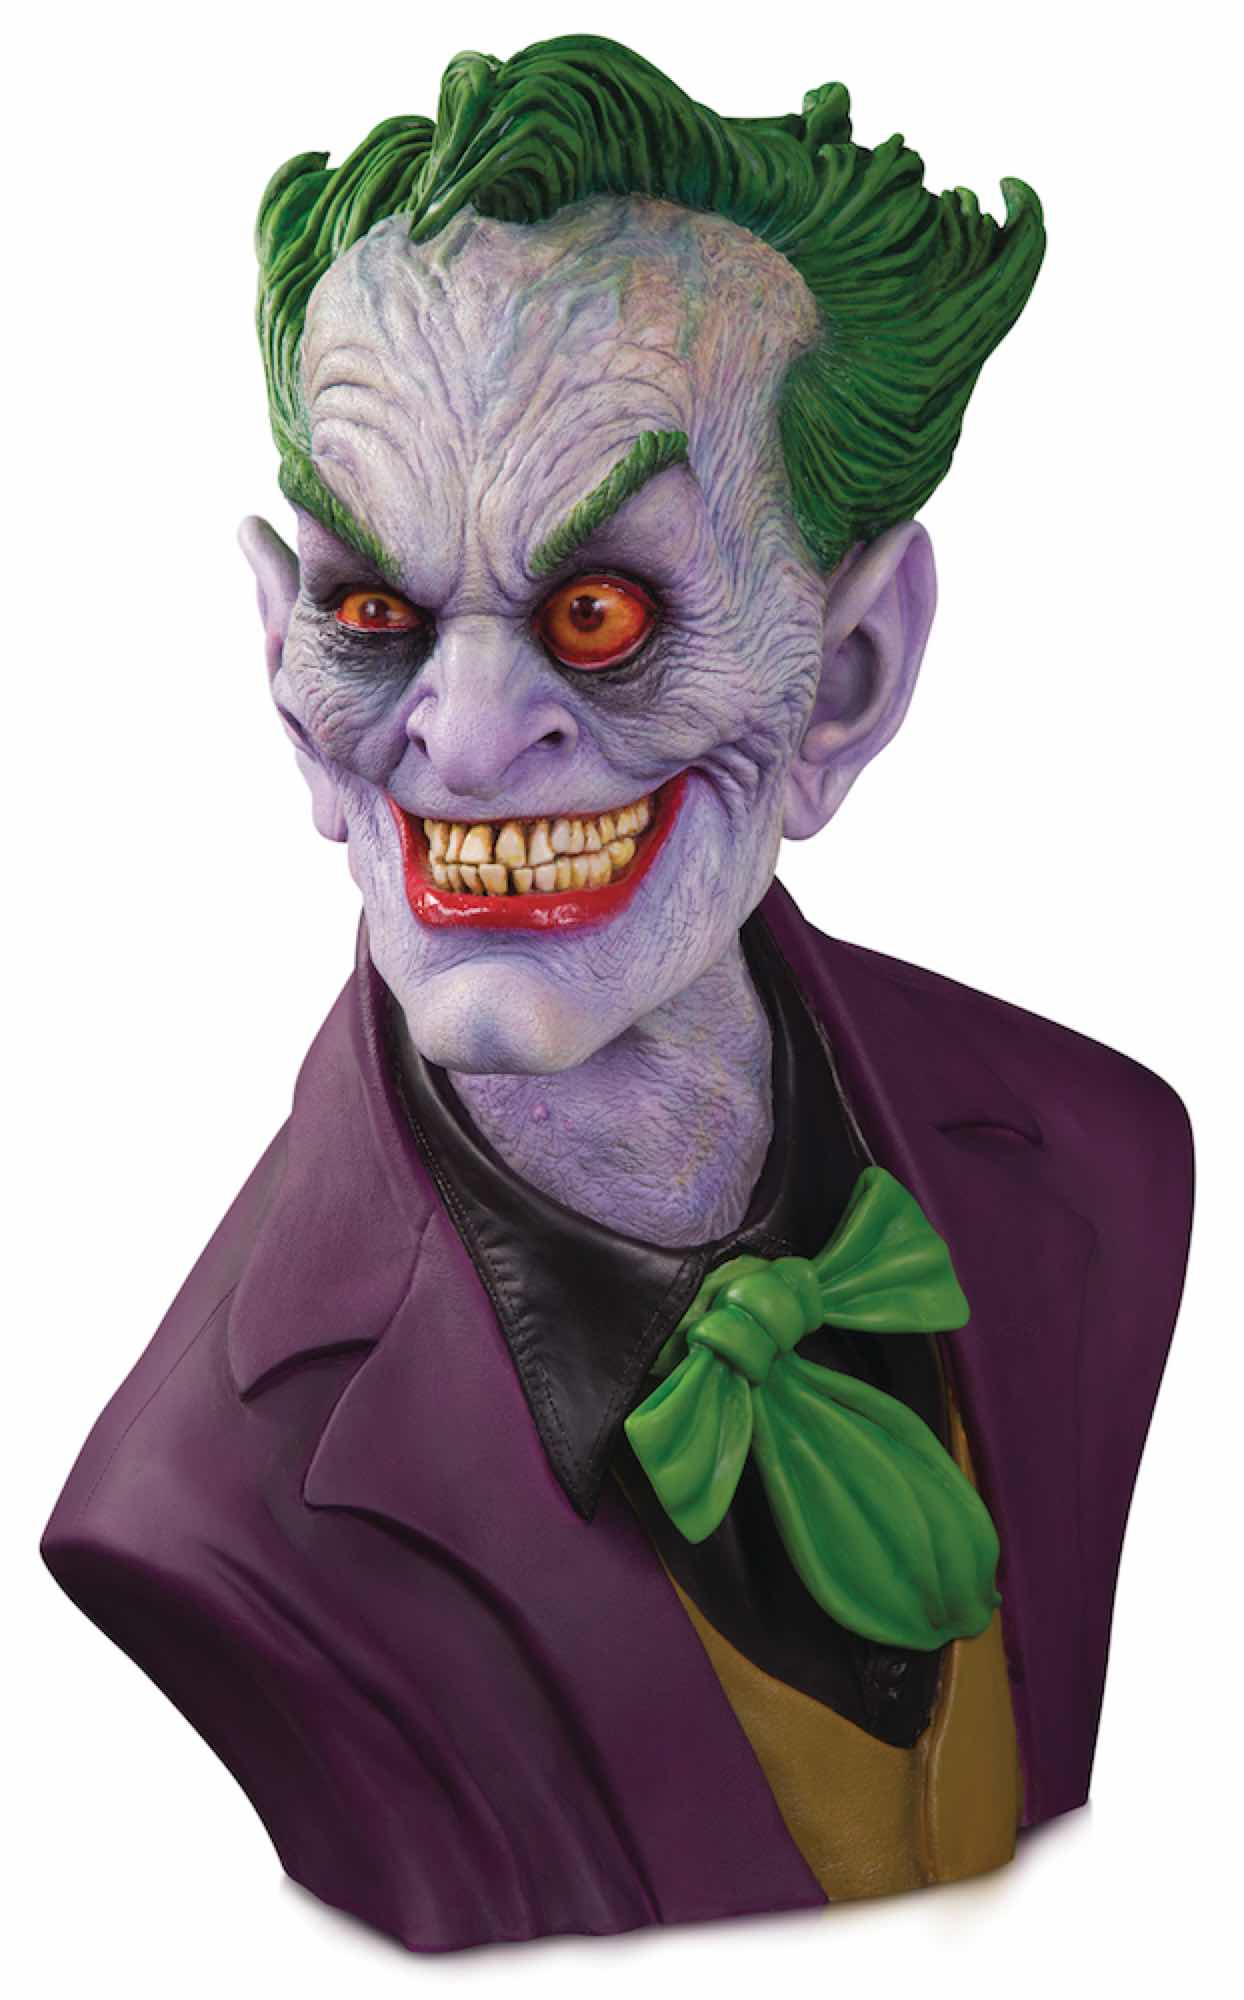 THE JOKER EDICION ULTIMATE BY RICK BAKER BUSTO 1:1 57 CM UNIVERSO DC GALLERY